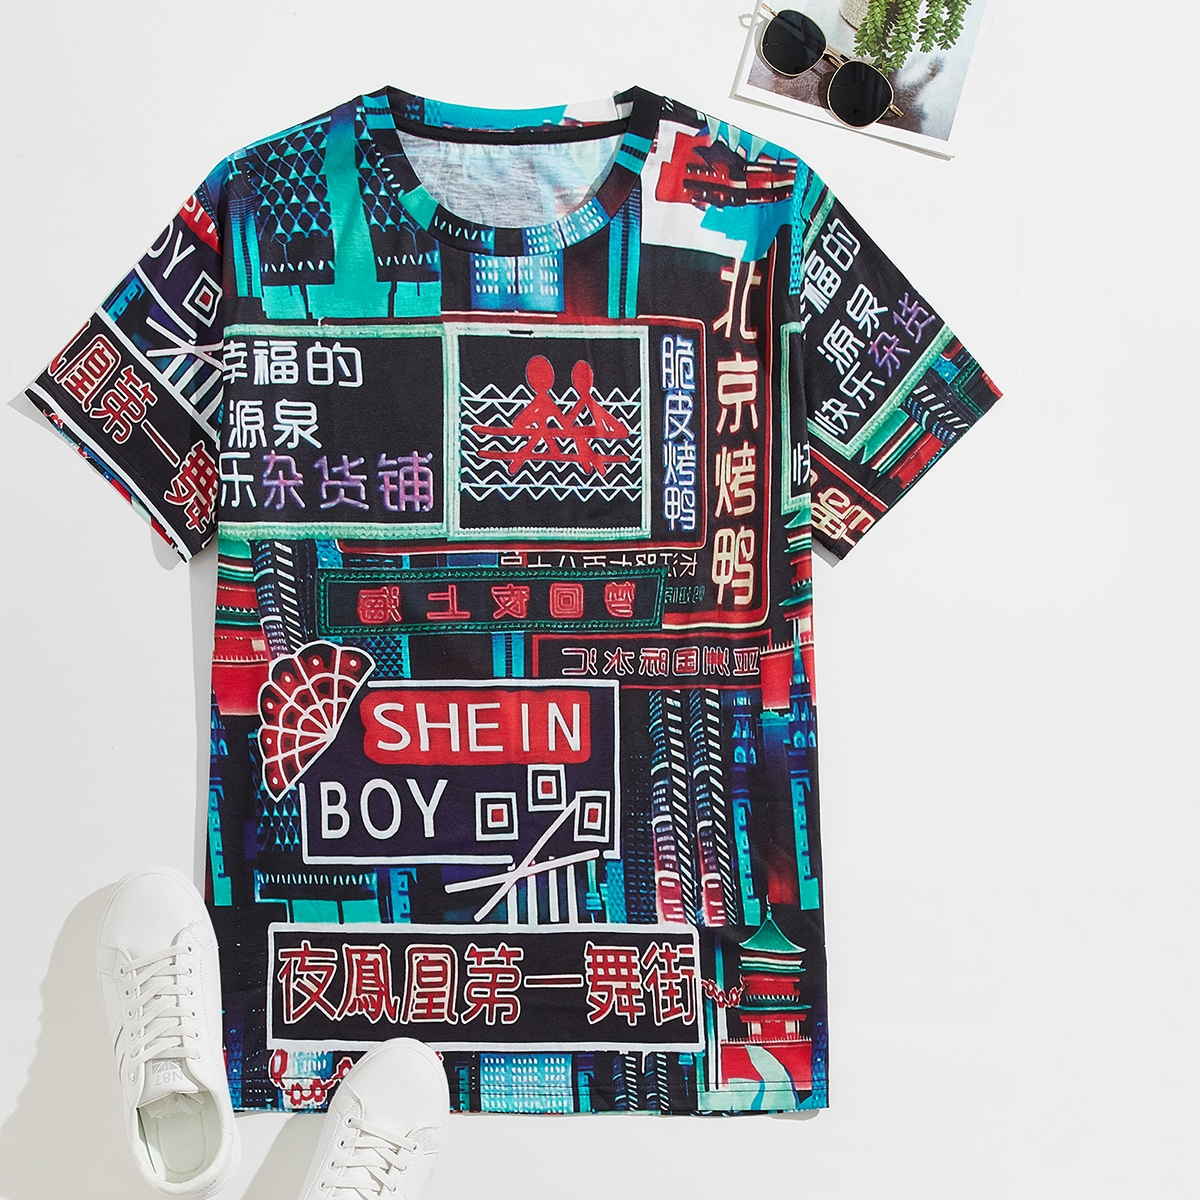 Men Random Building And Chinese Letter Graphic Tee, SHEIN  - buy with discount